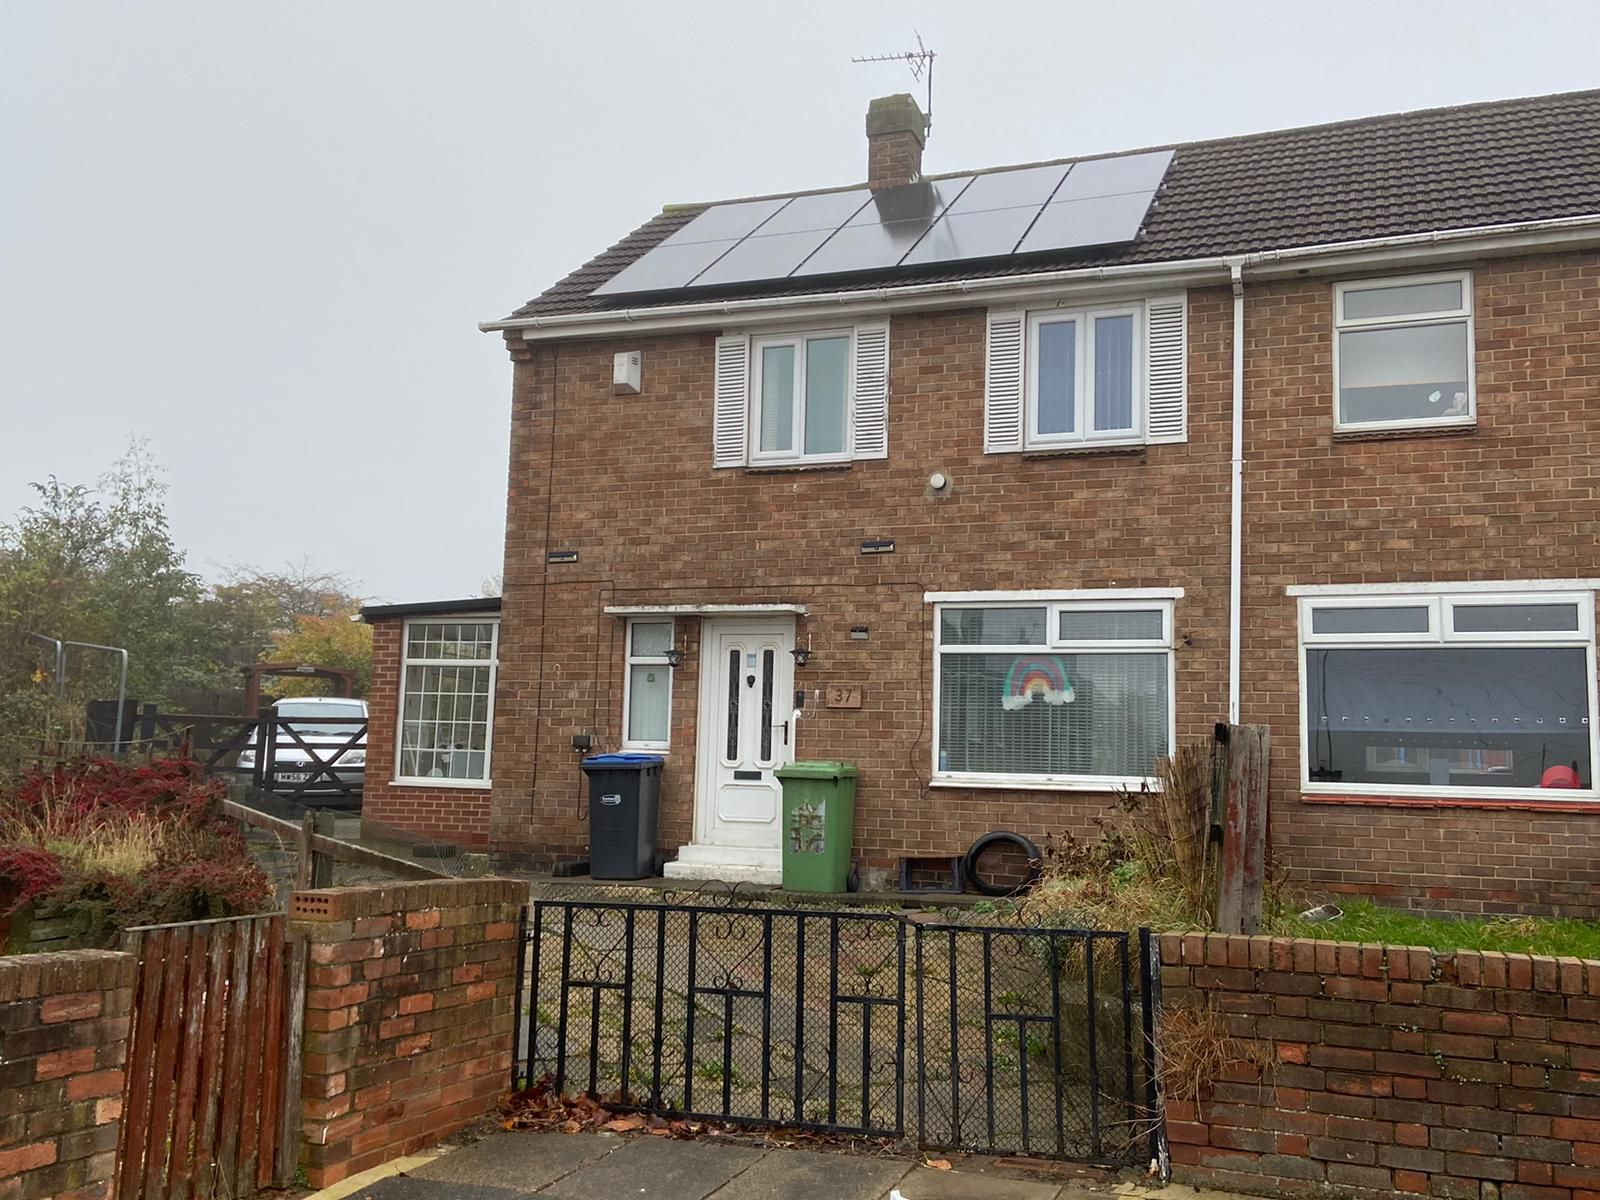 3 bedroom mid terraced house Let in Shildon - Photograph 1.